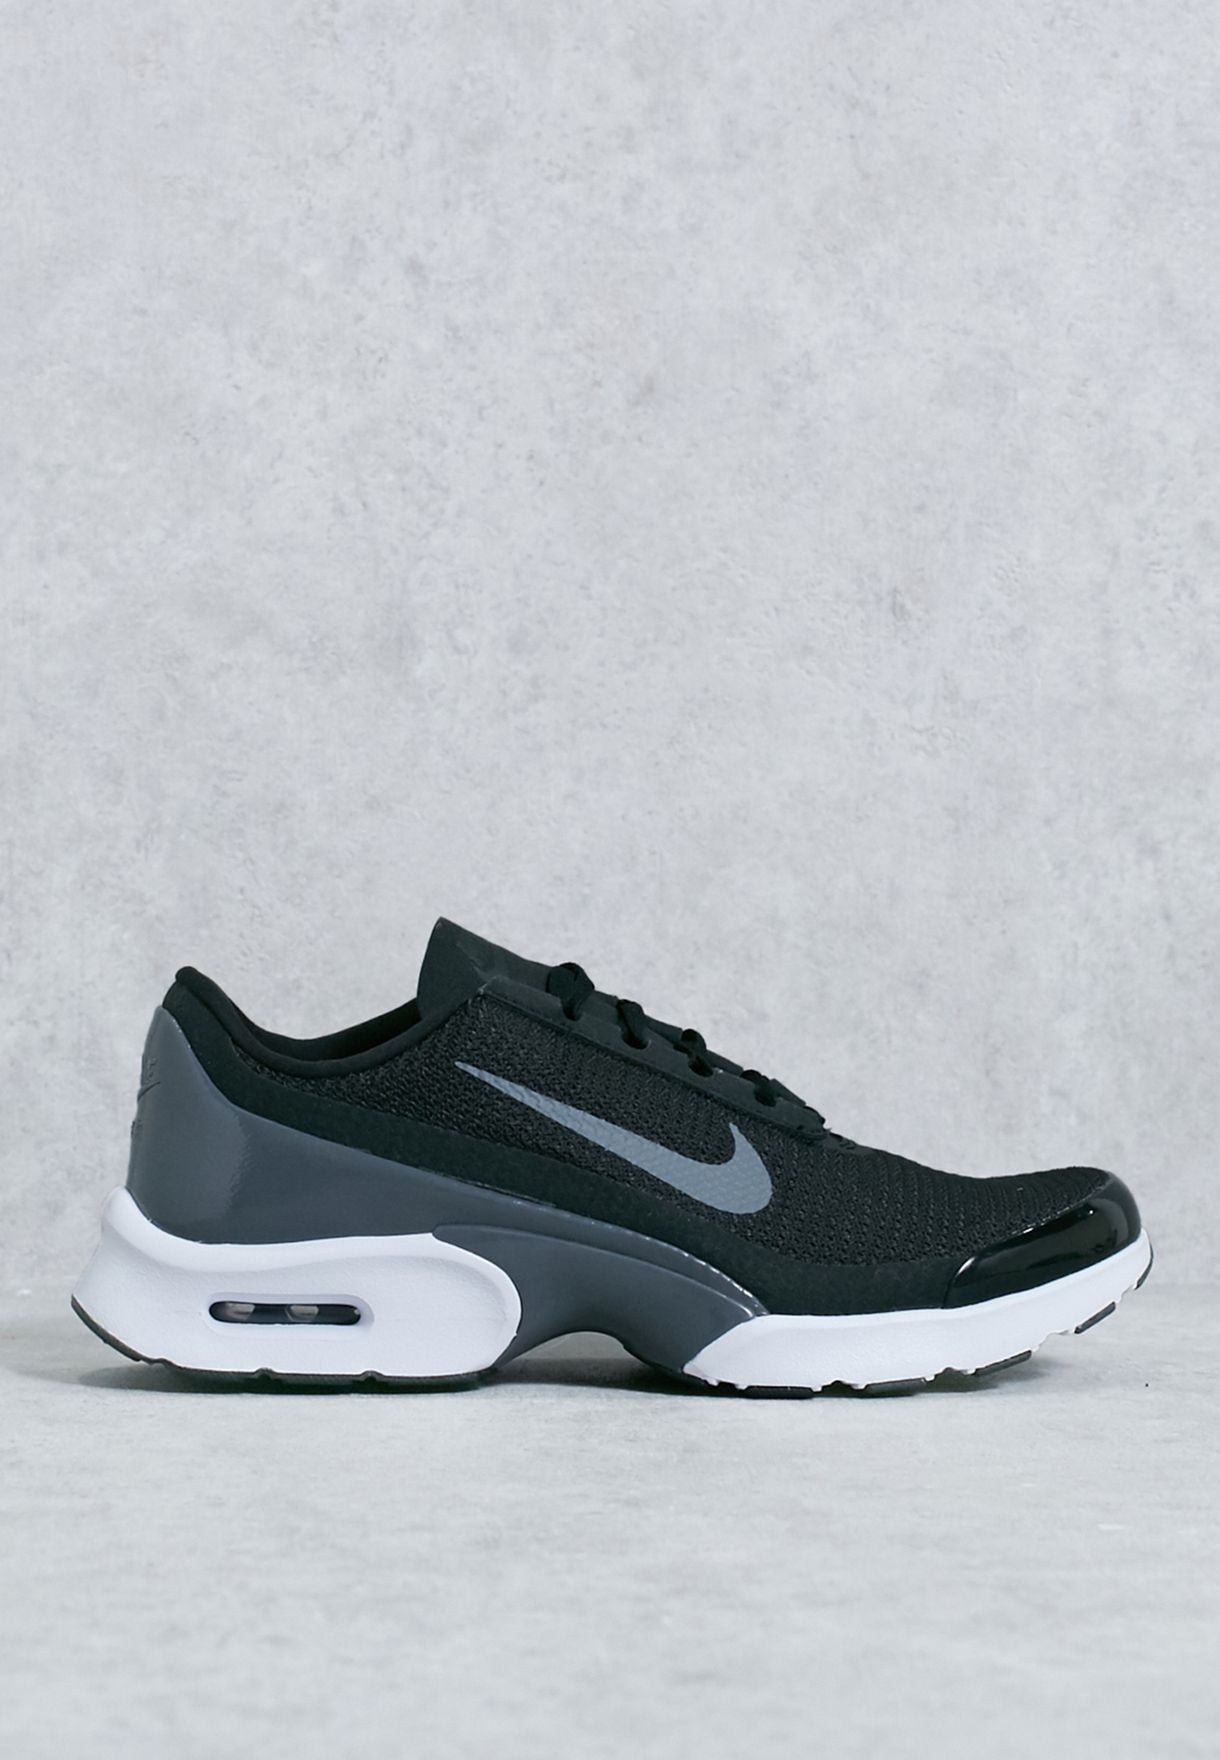 Nike Air Max Jewell Release Date 896194 001  